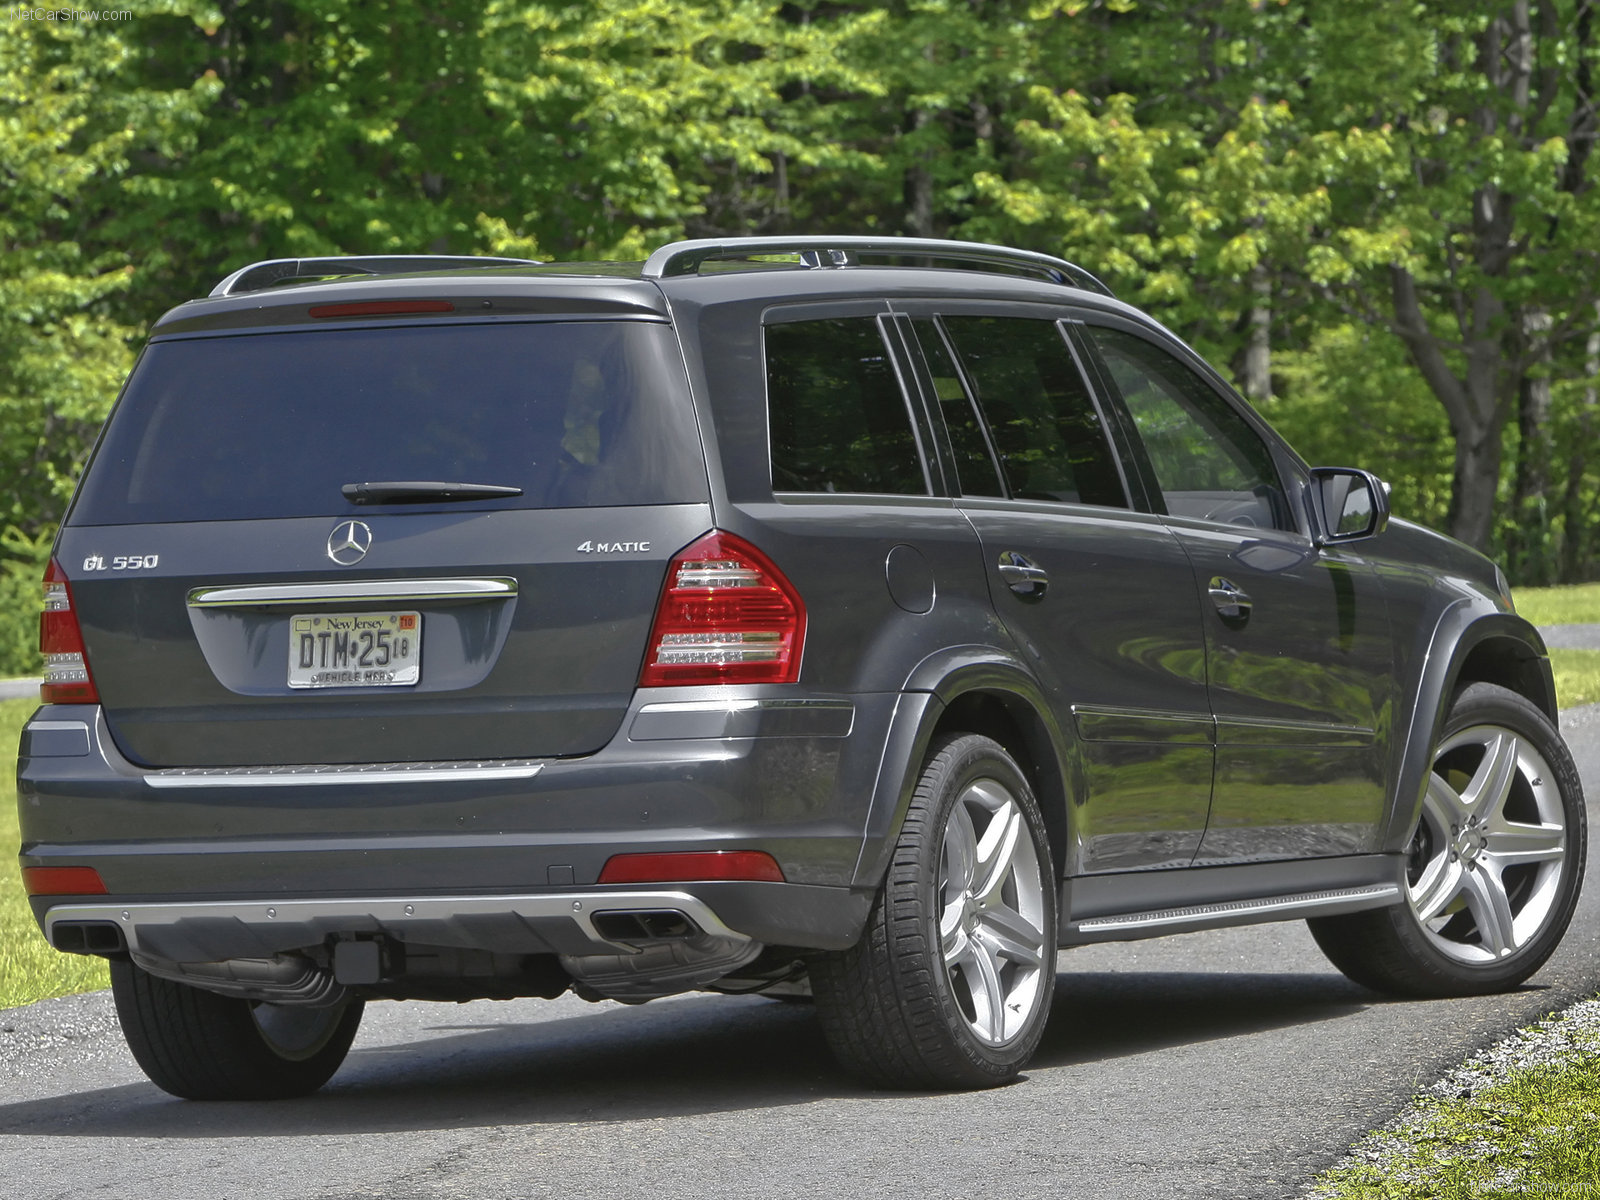 3dtuning of mercedes gl class suv 2010 for Mercedes benz 2010 suv